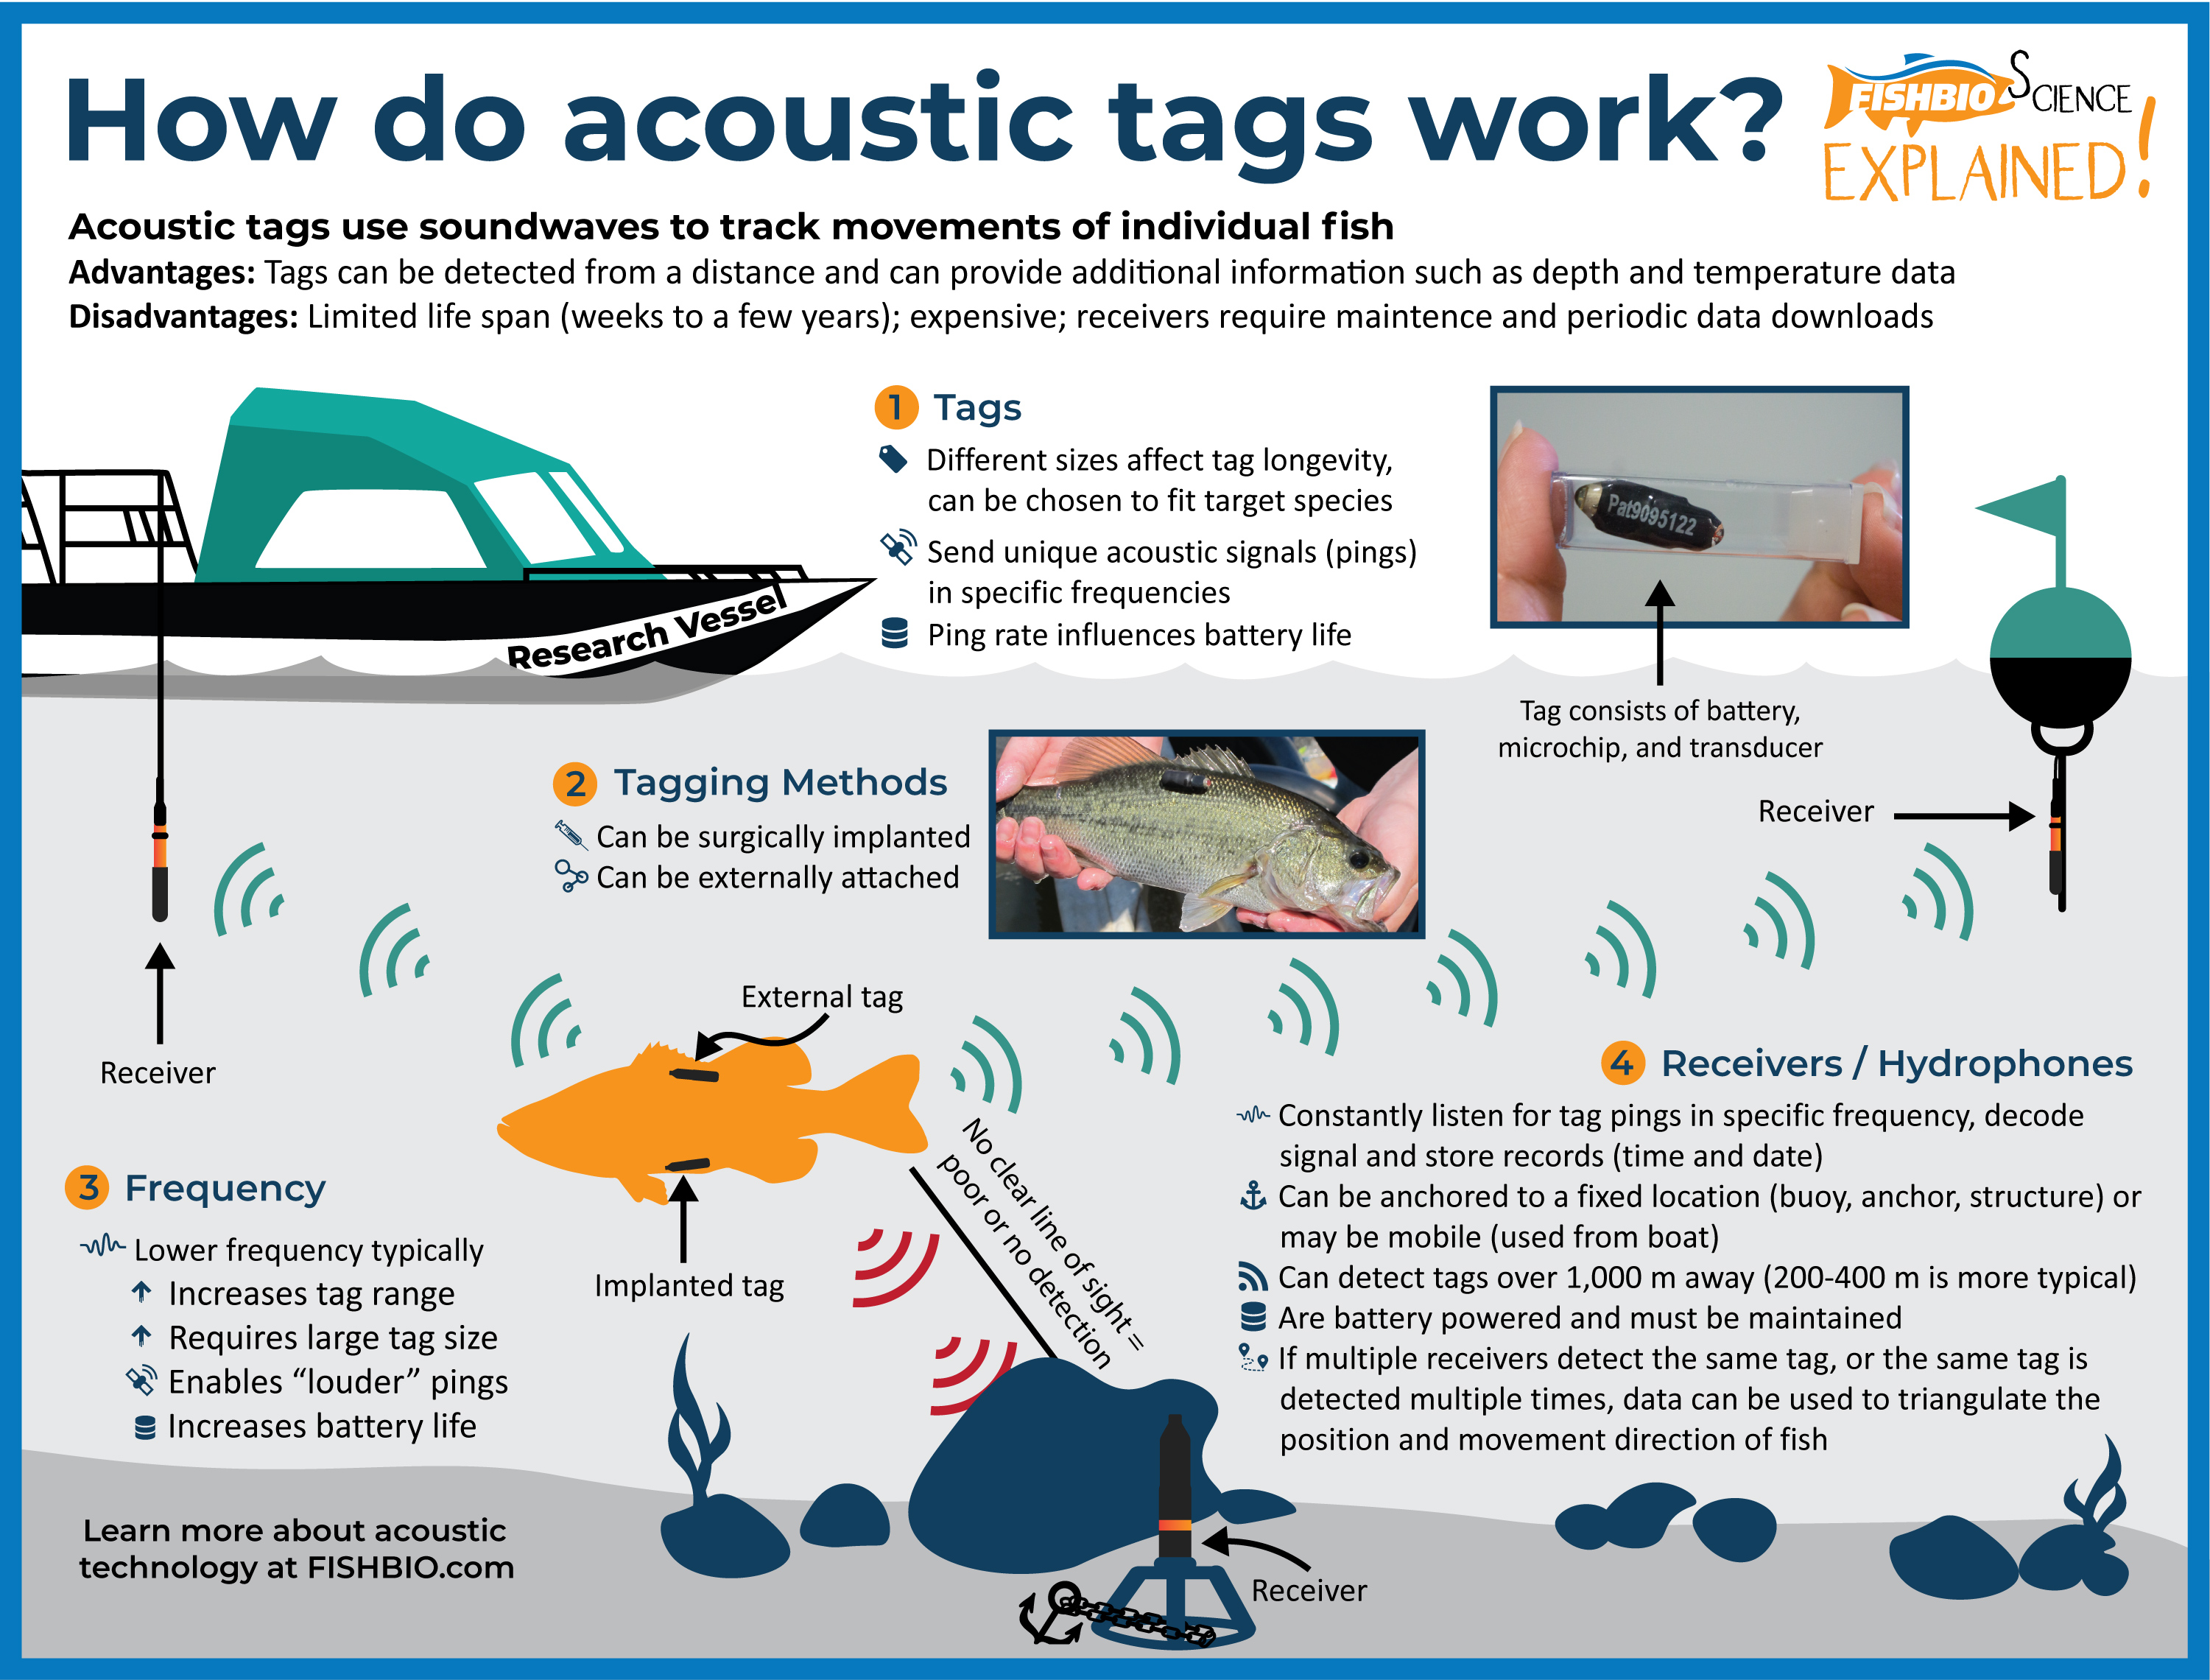 FISHBIO Fish Science Explained_Acoustic Tags and Telemetry